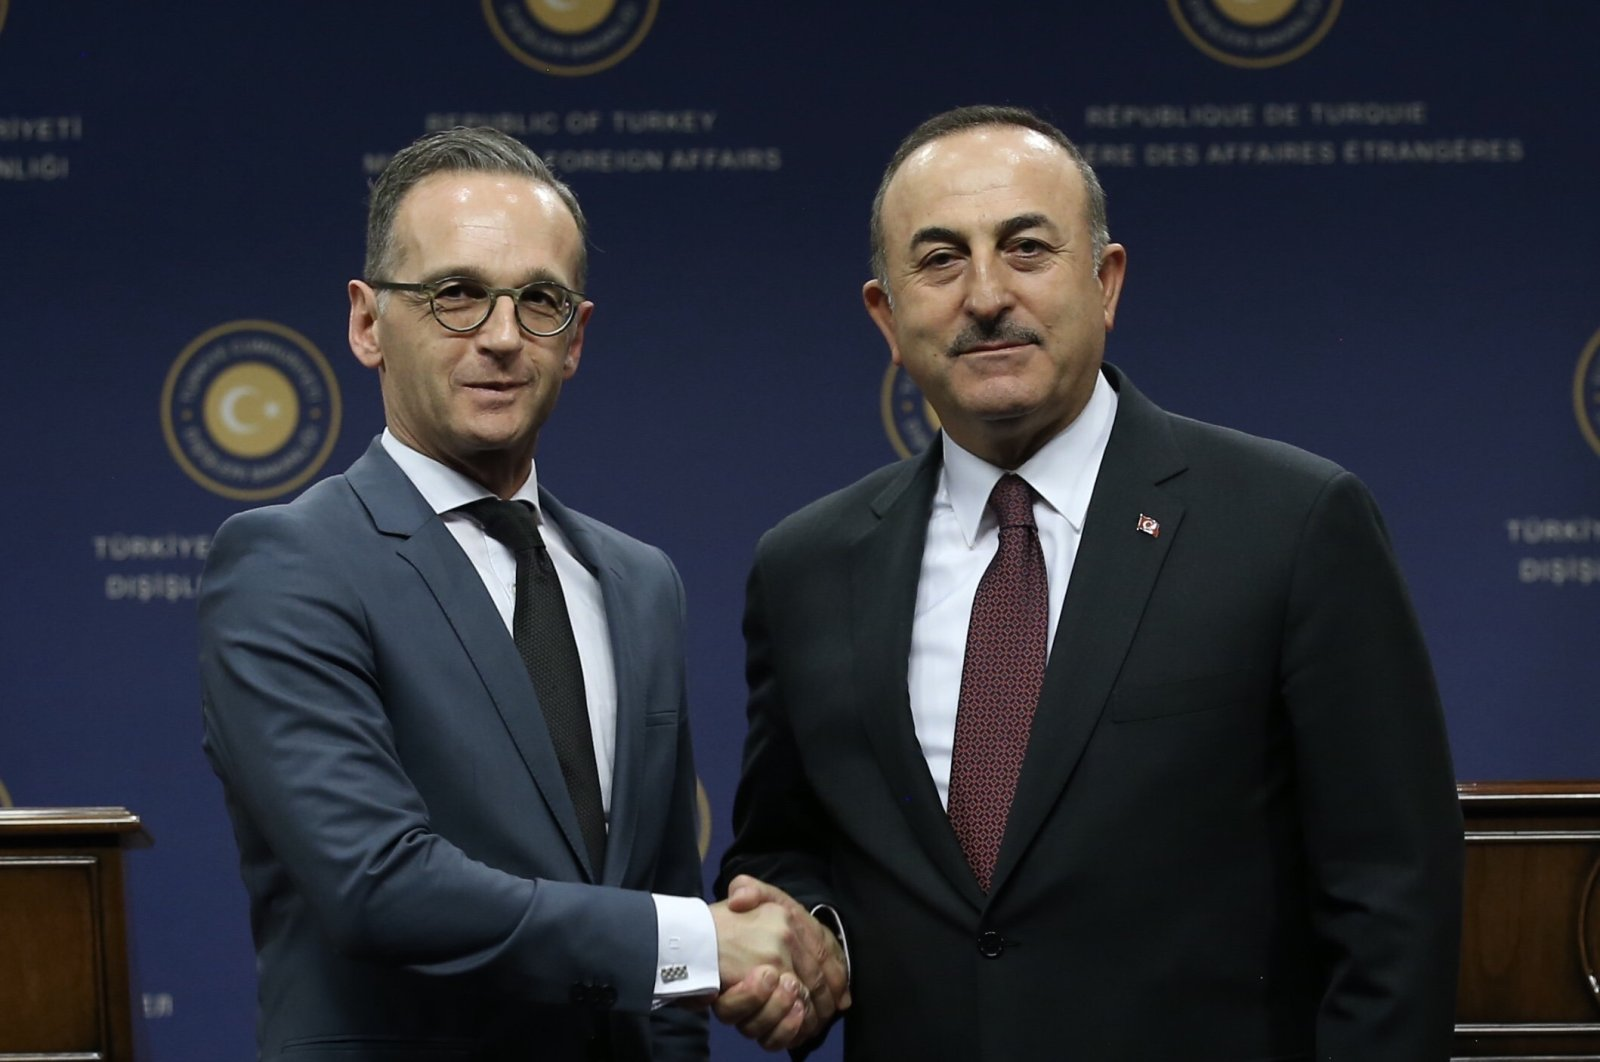 Foreign Minister Mevlüt Çavuşoğlu (R) and his German counterpart Heiko Maas shake hands after a joint press conference, Ankara, Oct. 26, 2019. (AA Photo)